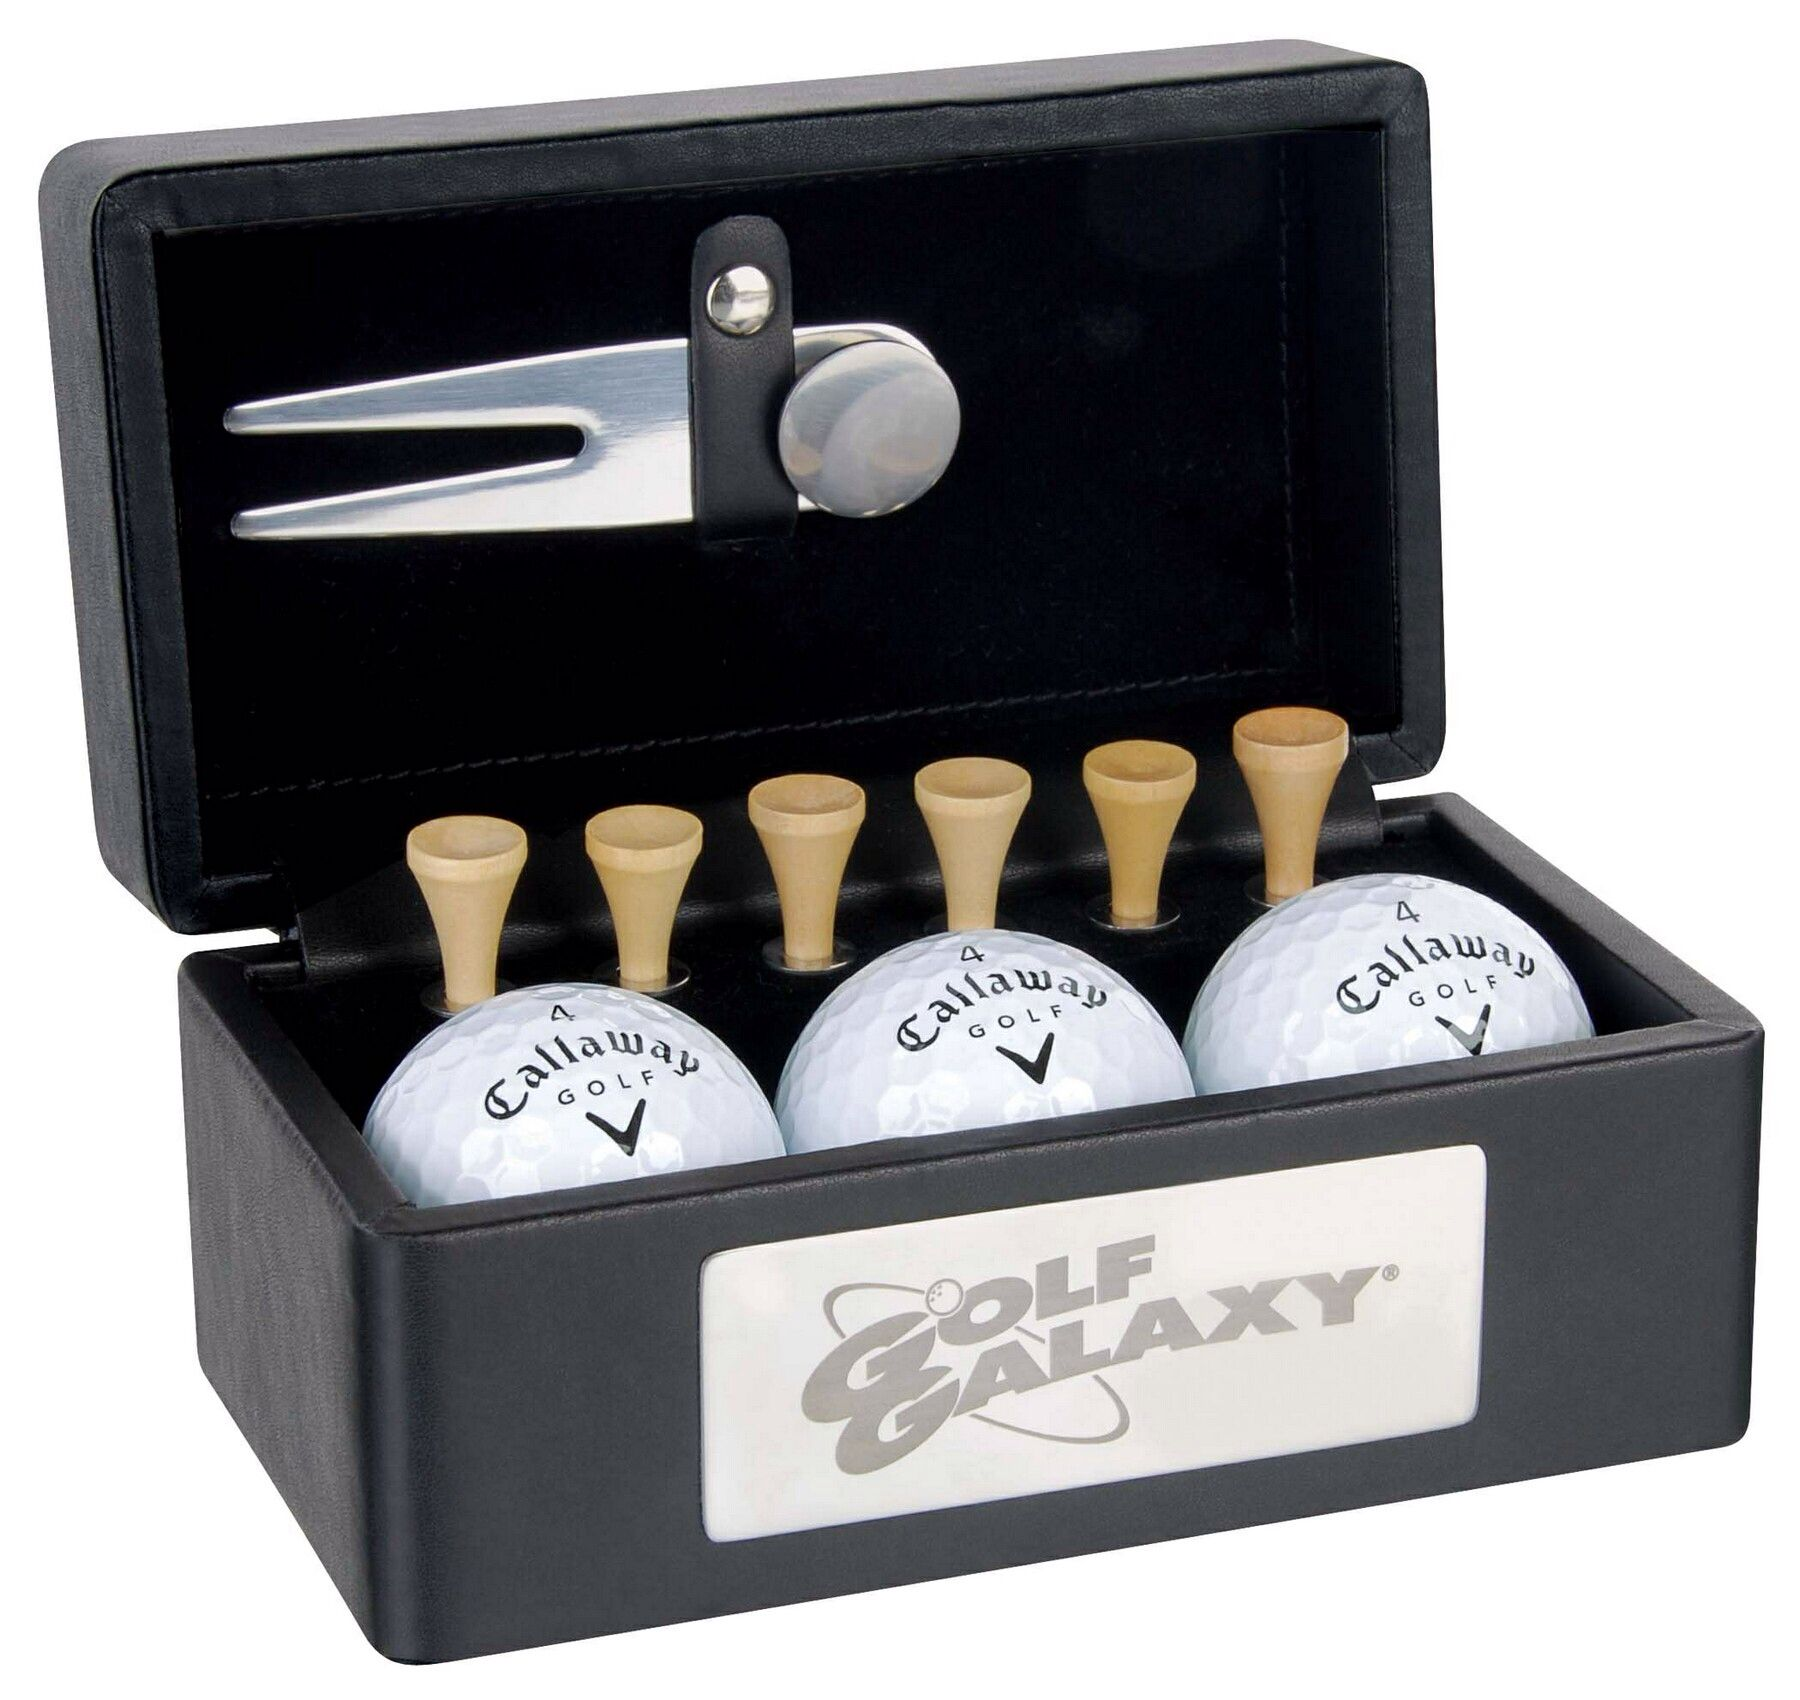 Golf gift box Promotional gift . Let us source and imprint